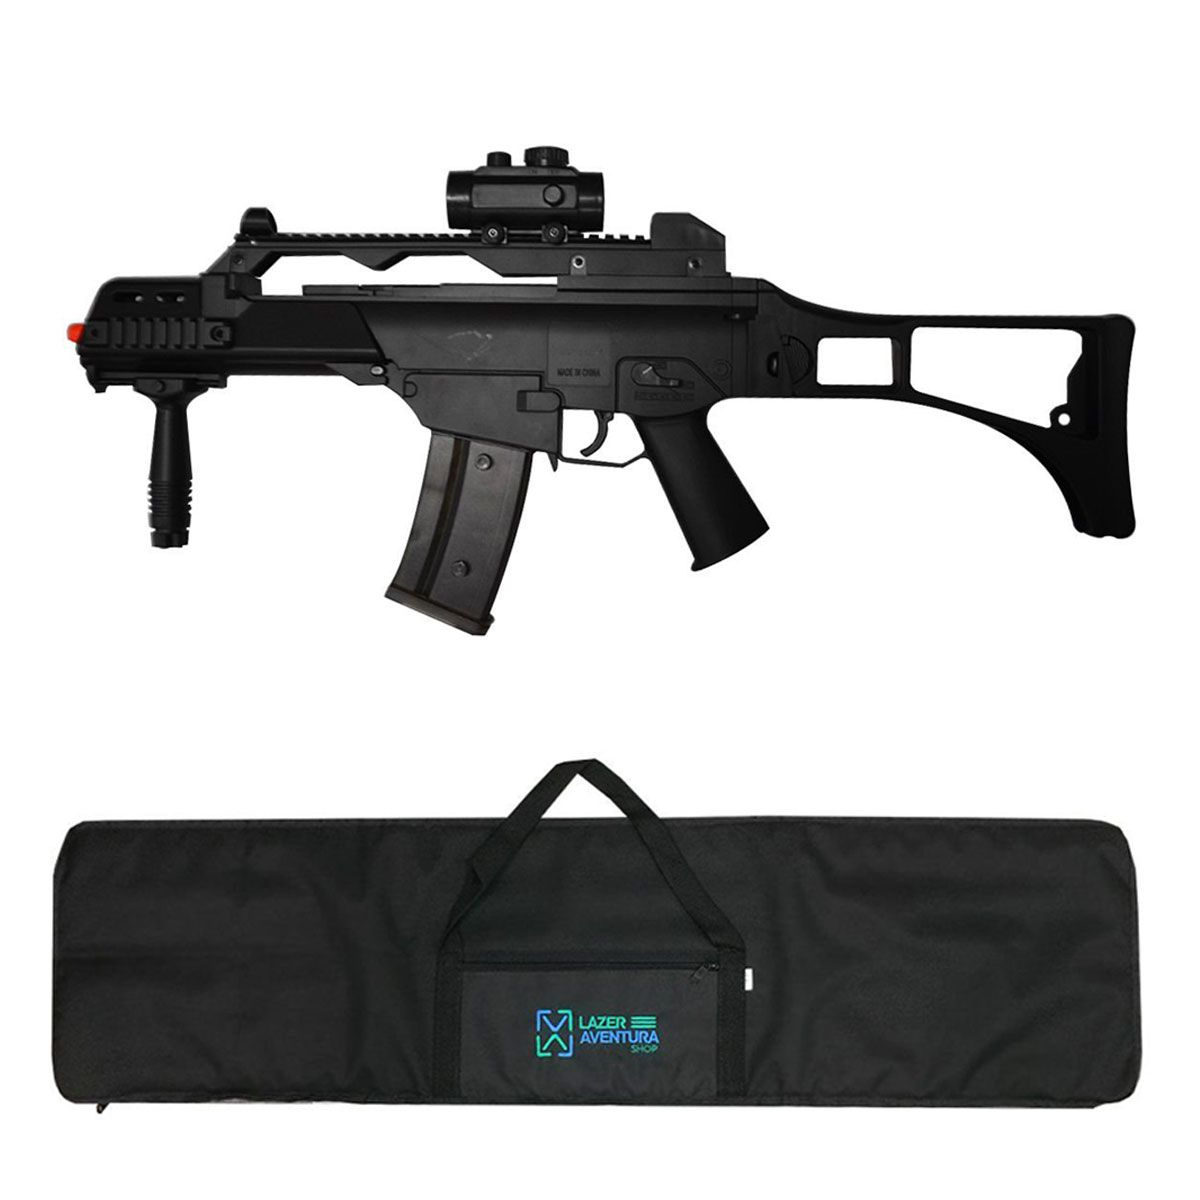 Kit Rifle Cyma G36 6mm + Capa Lazer e Aventura